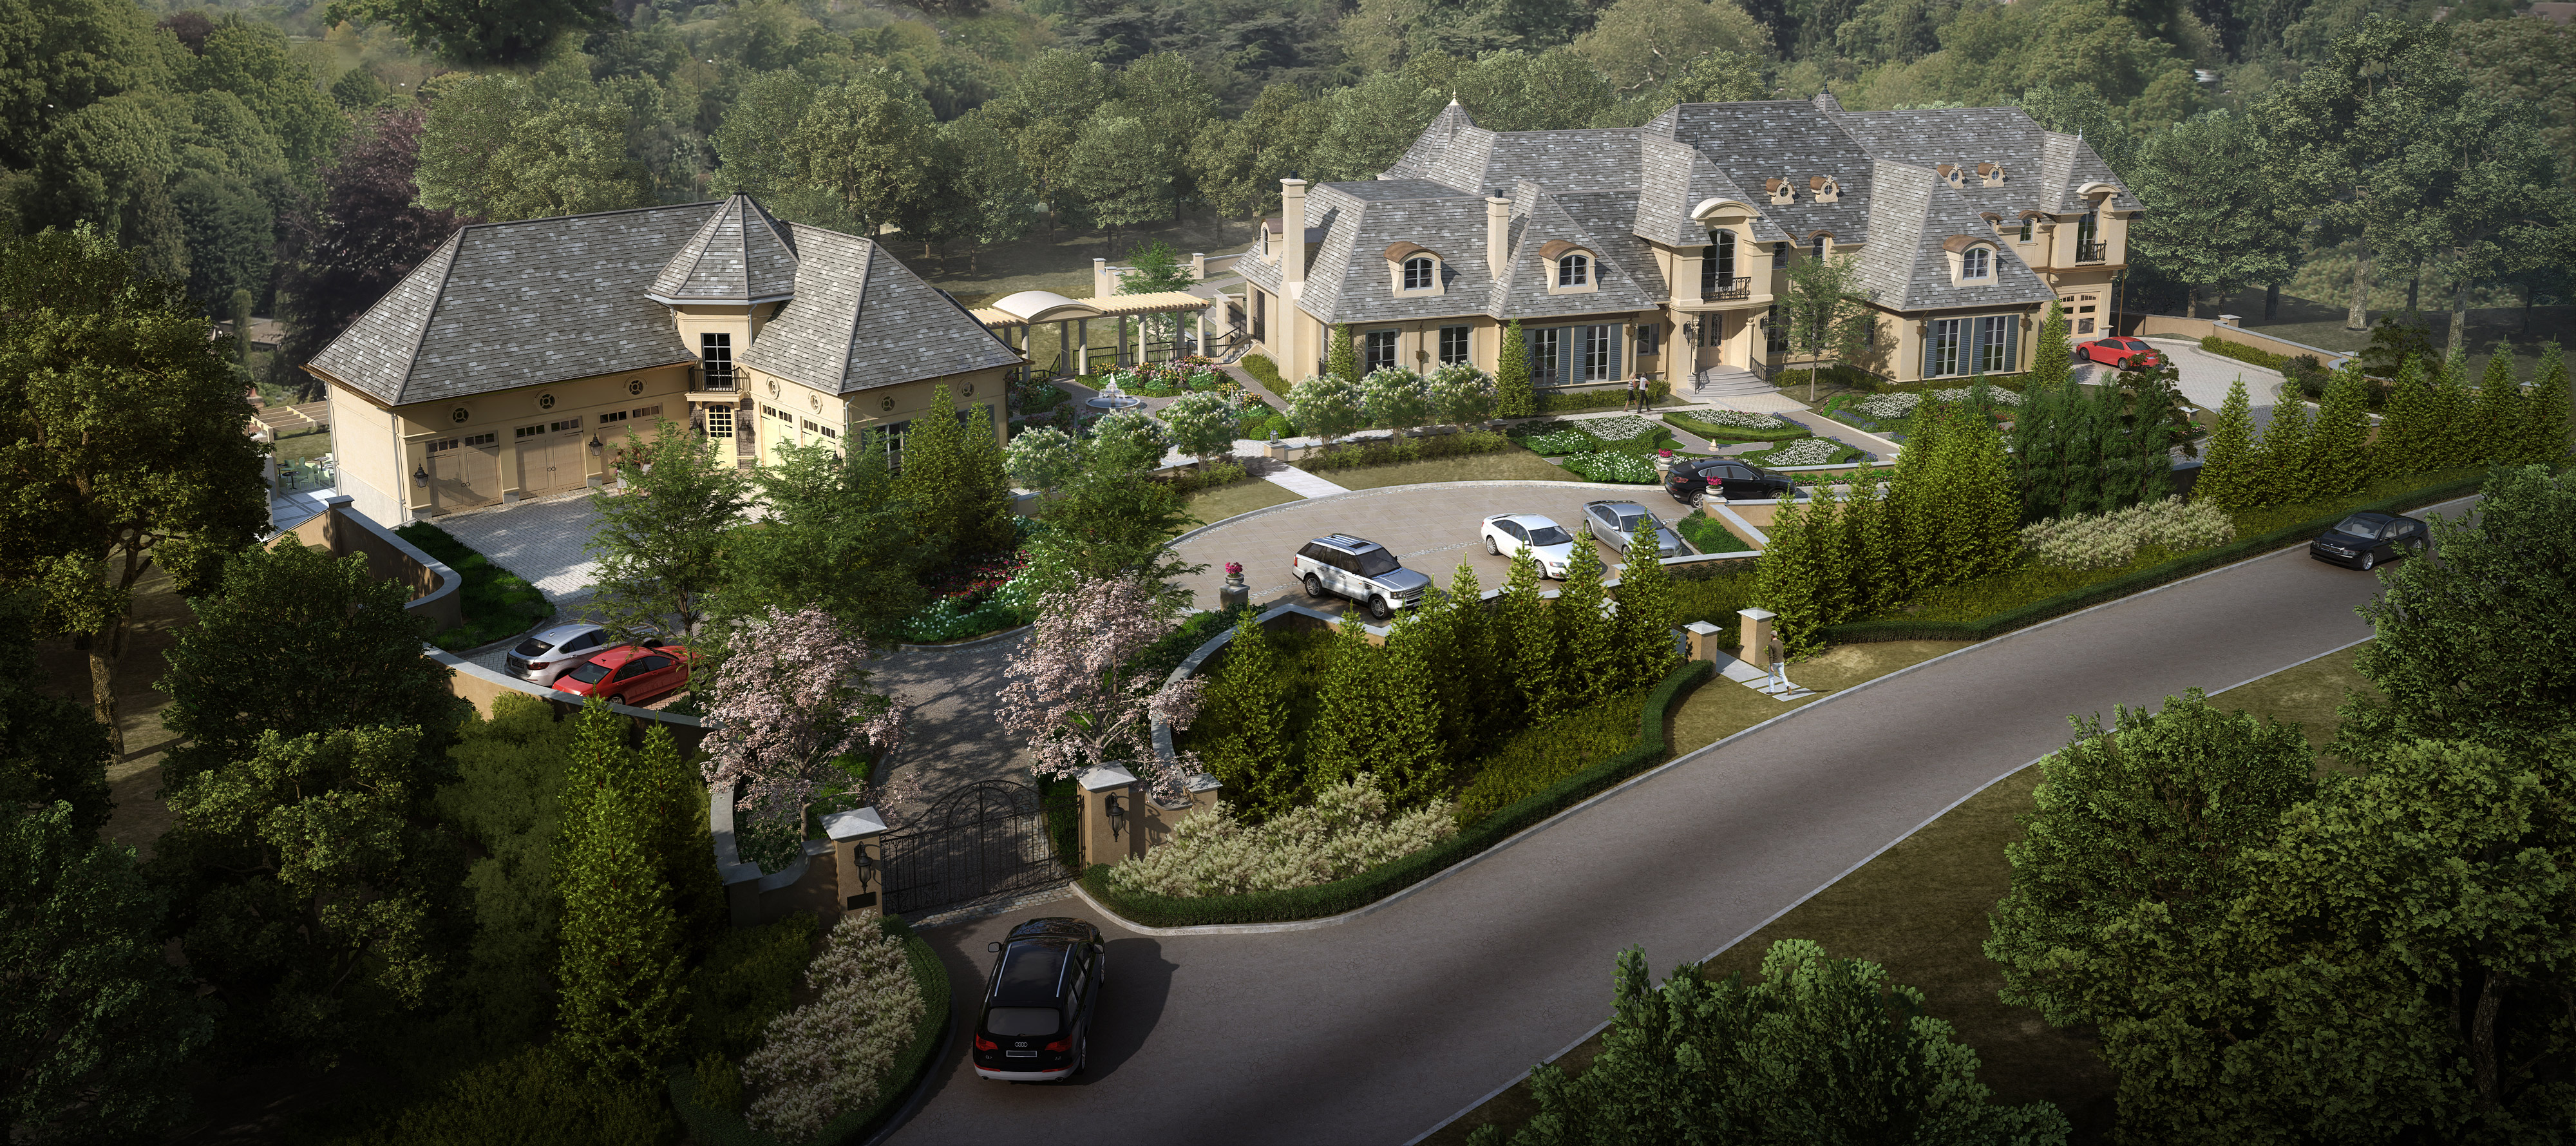 Chateau in McLean